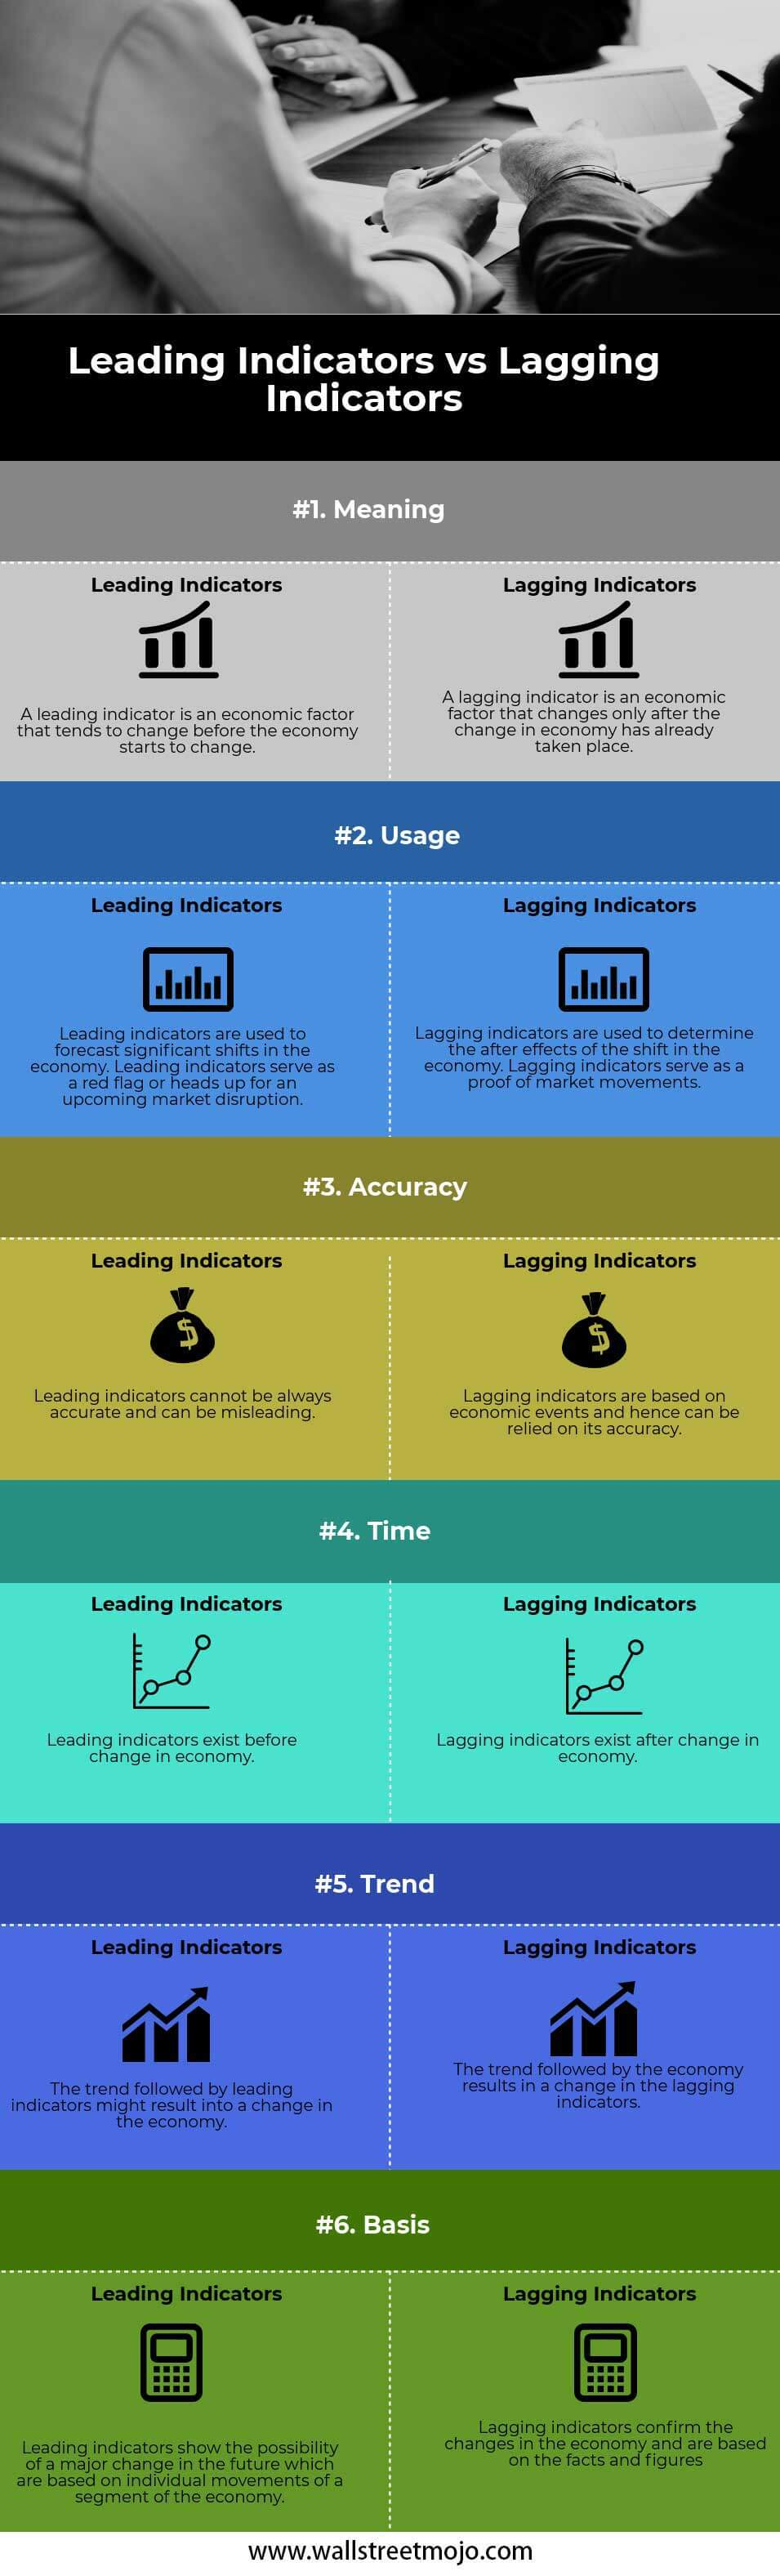 Leading-vs-Lagging-Indicators-info